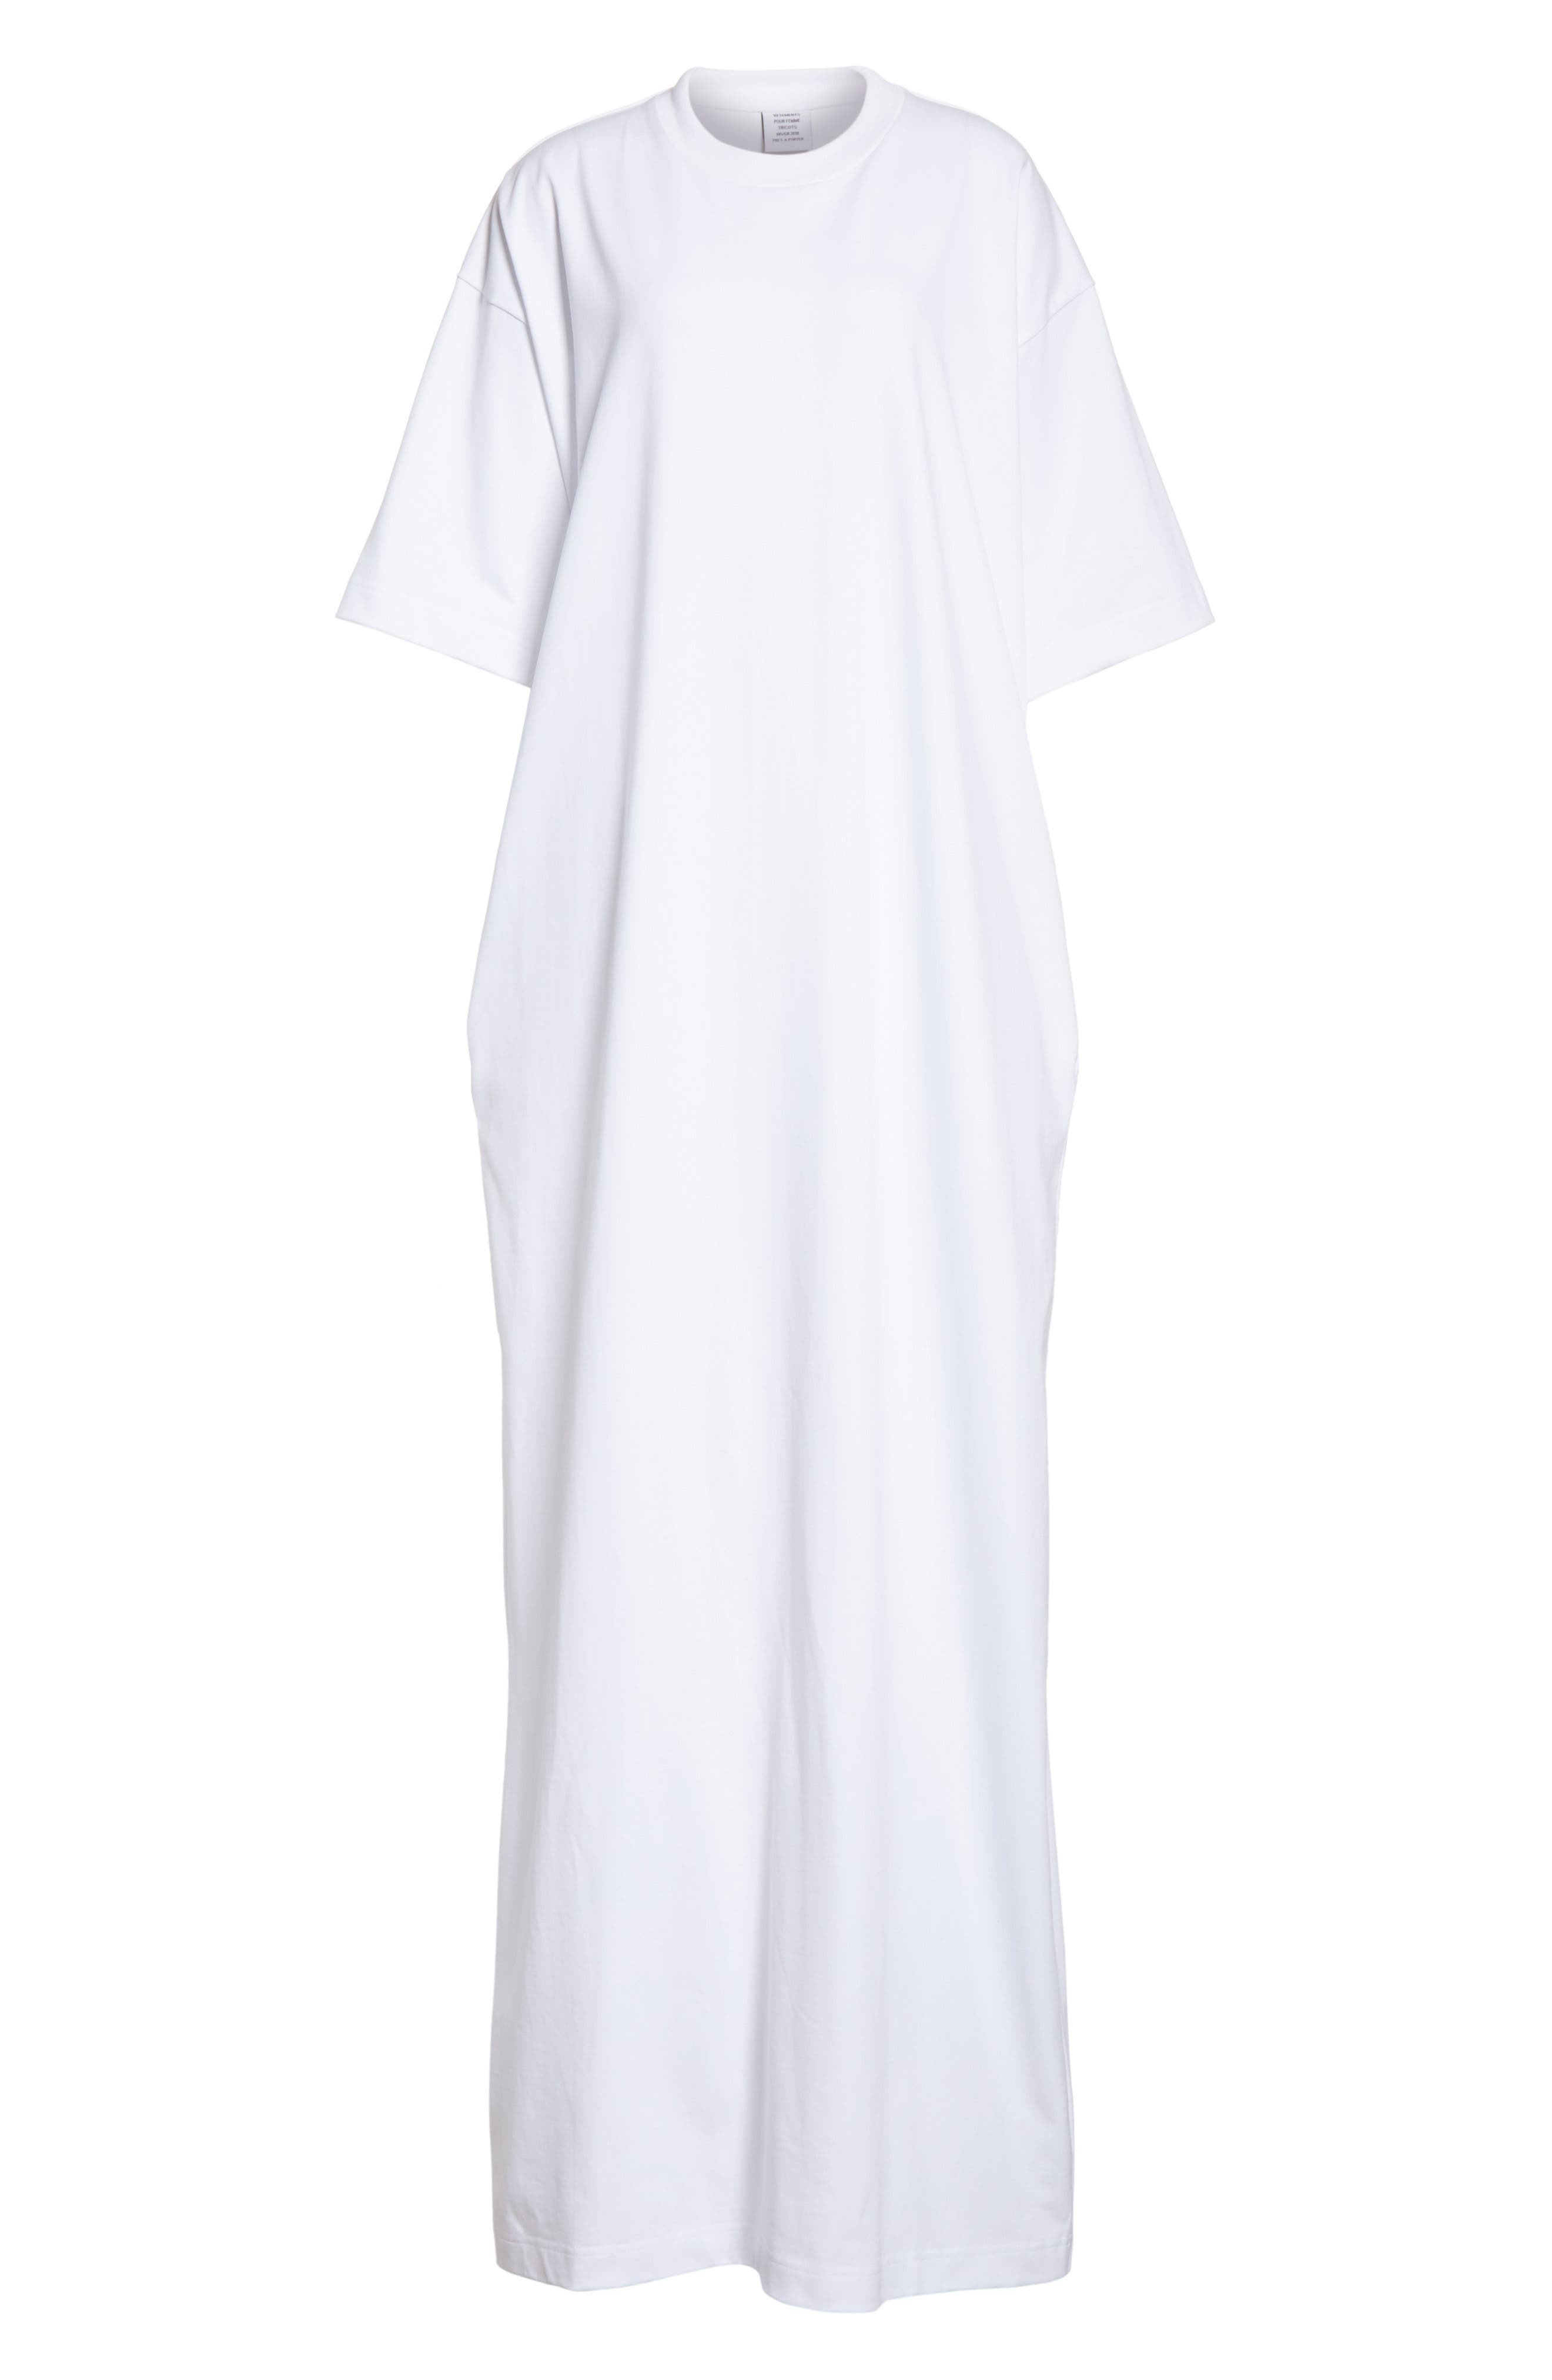 T-Shirt Dress,                             Alternate thumbnail 7, color,                             White